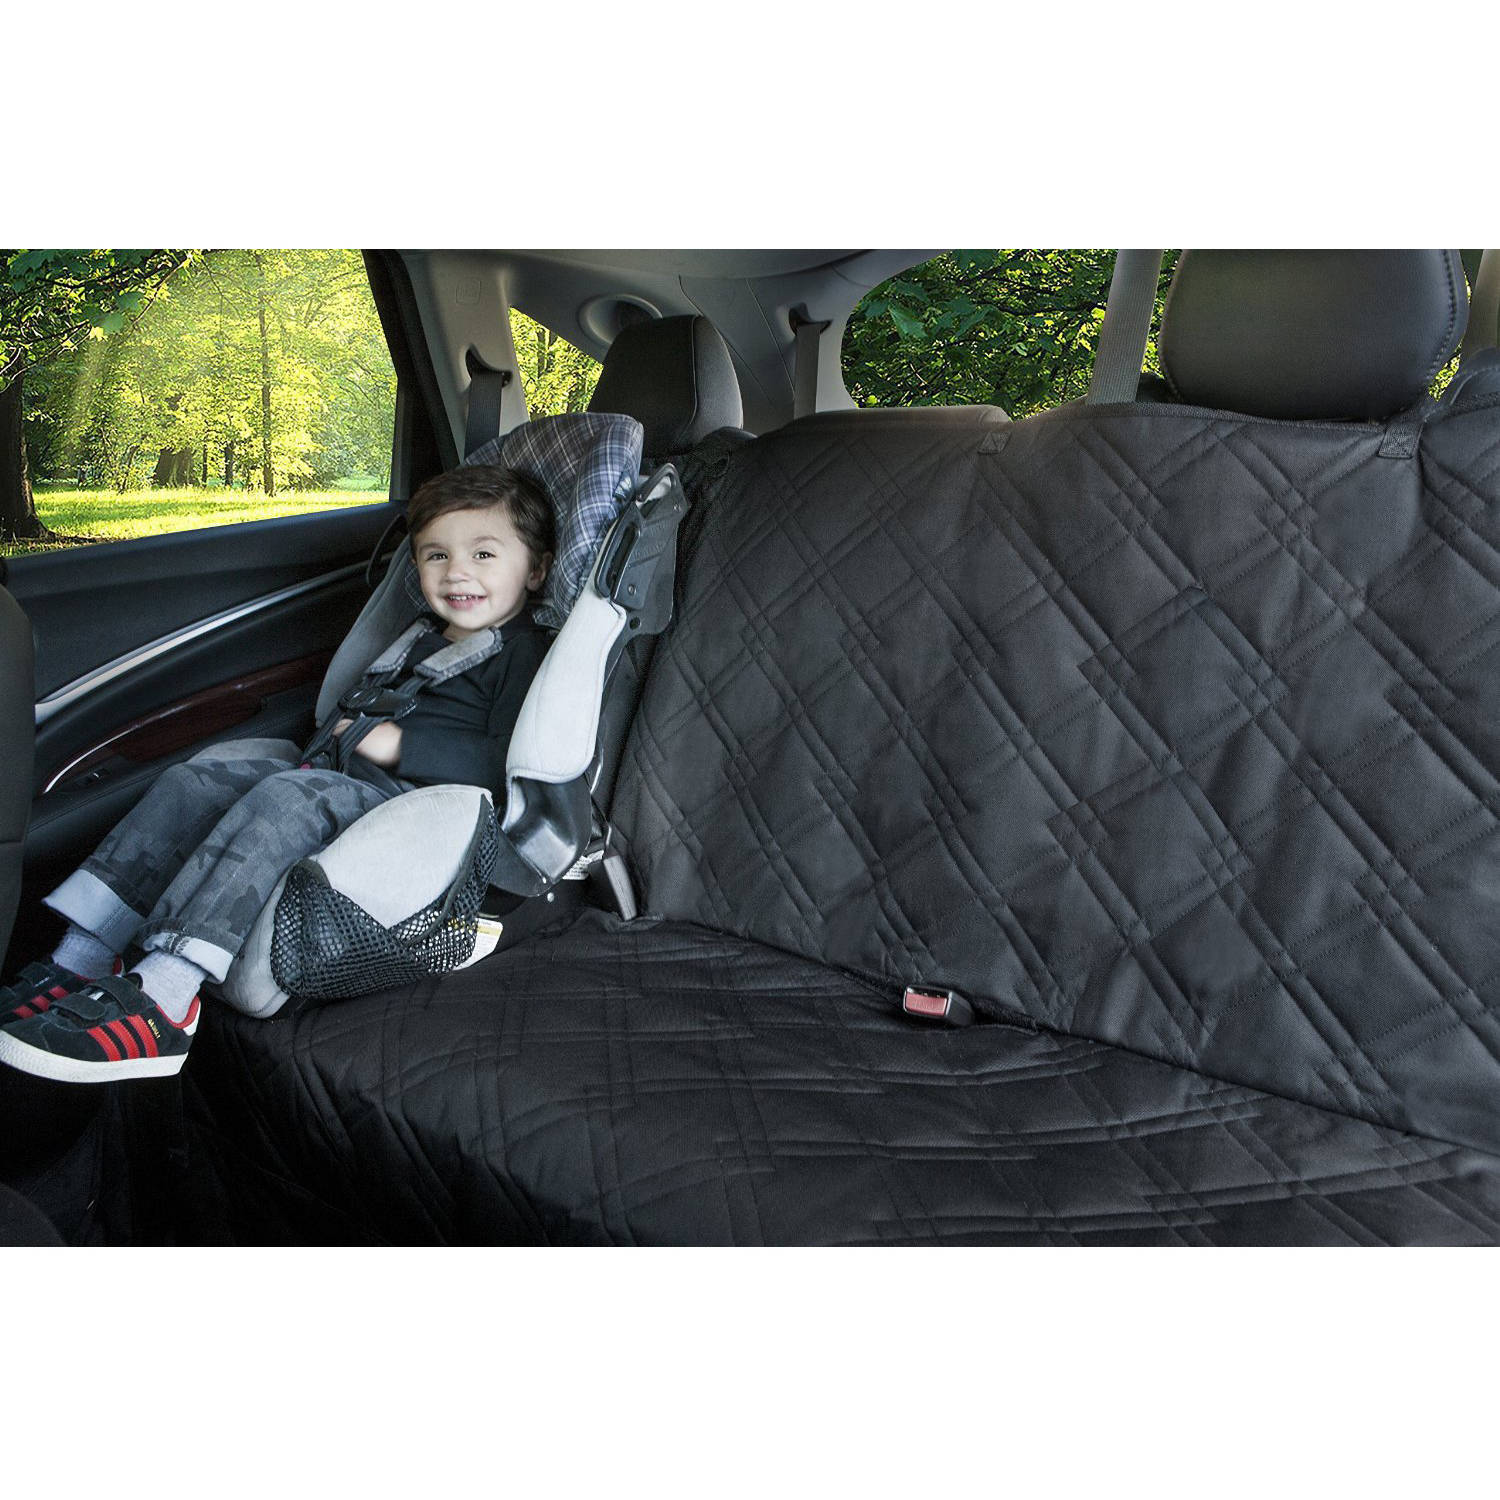 Rumbi Baby Bench Seat Protector For Infant Carseats, Black